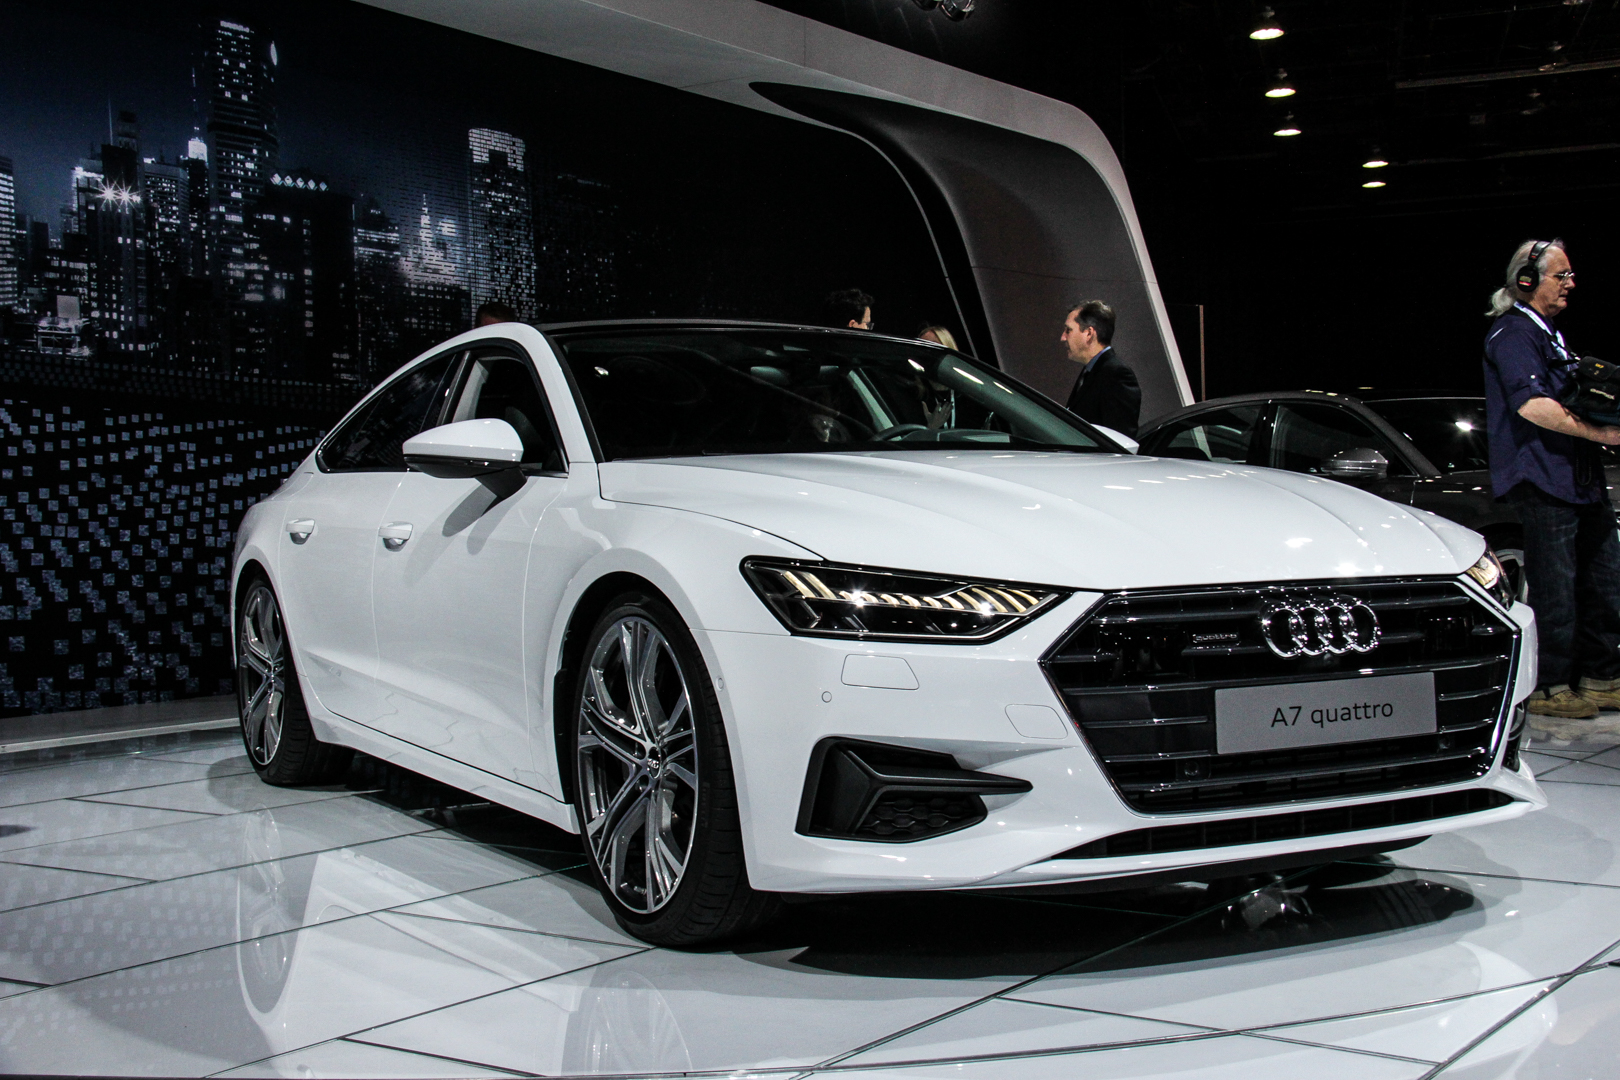 2018 Detroit Auto Show Second Gen Audi A7 Hits American Shores